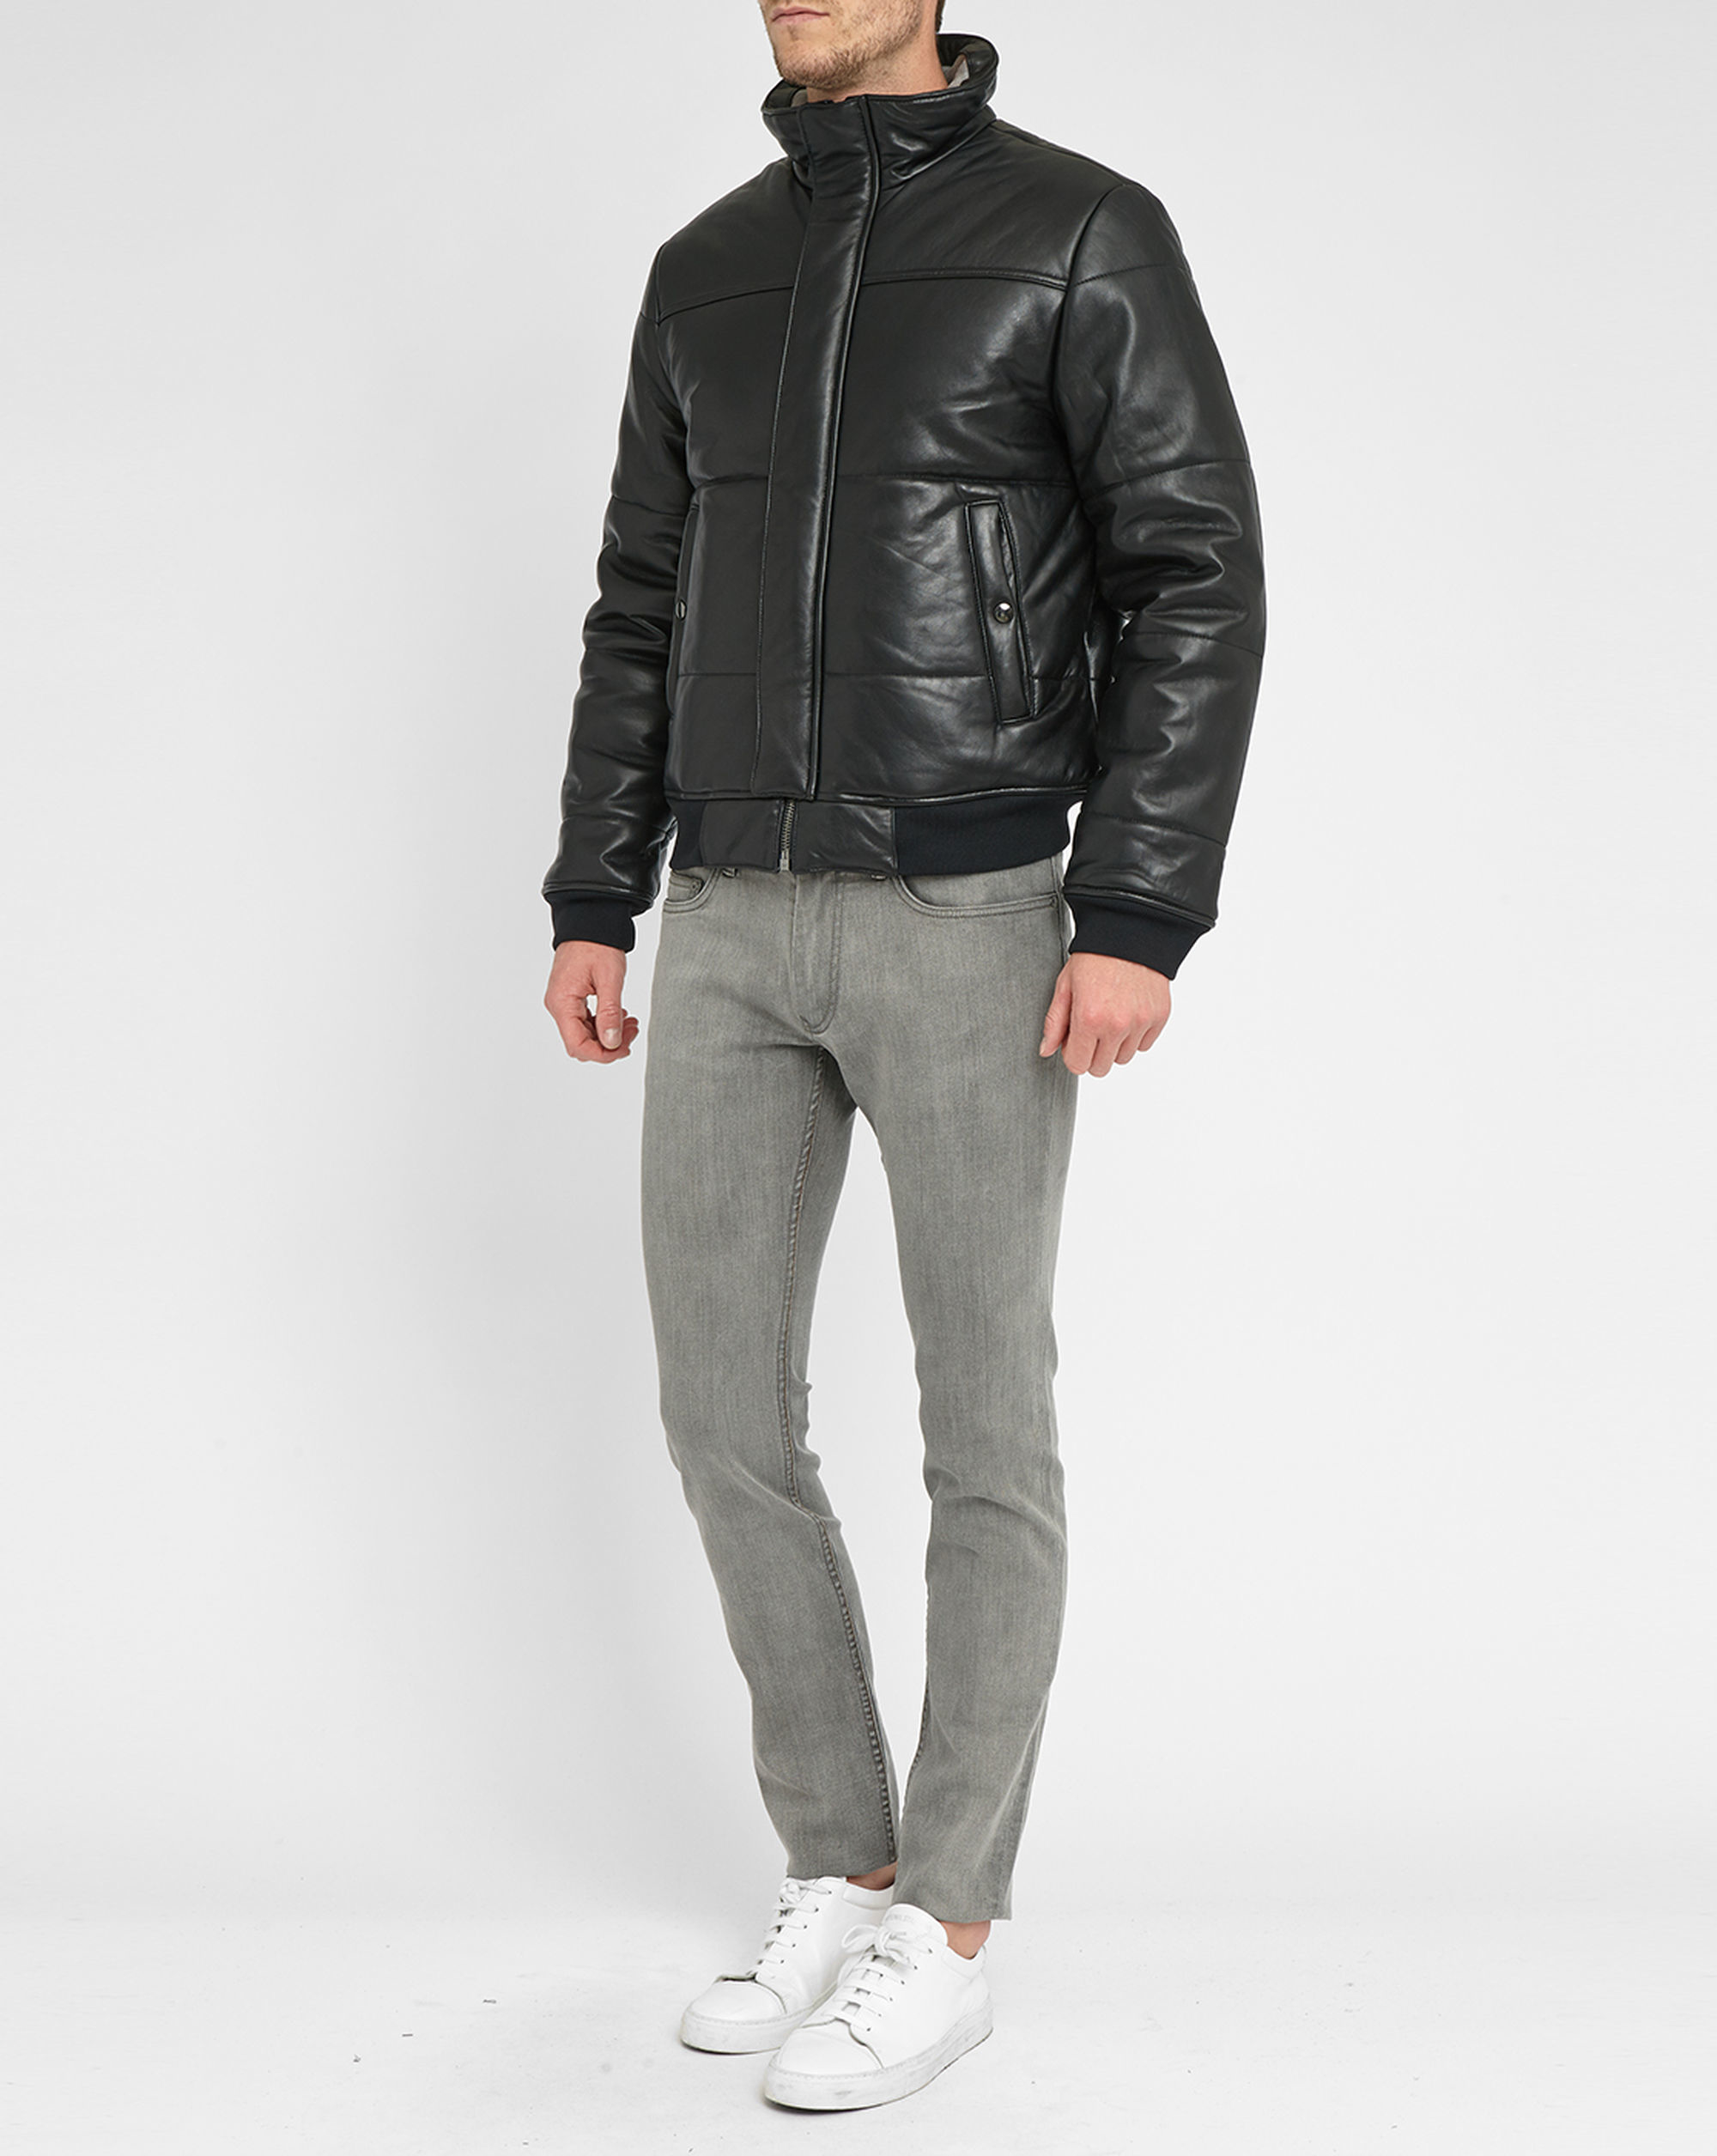 Marc by marc jacobs Black Hudson Leather Down Jacket in ...